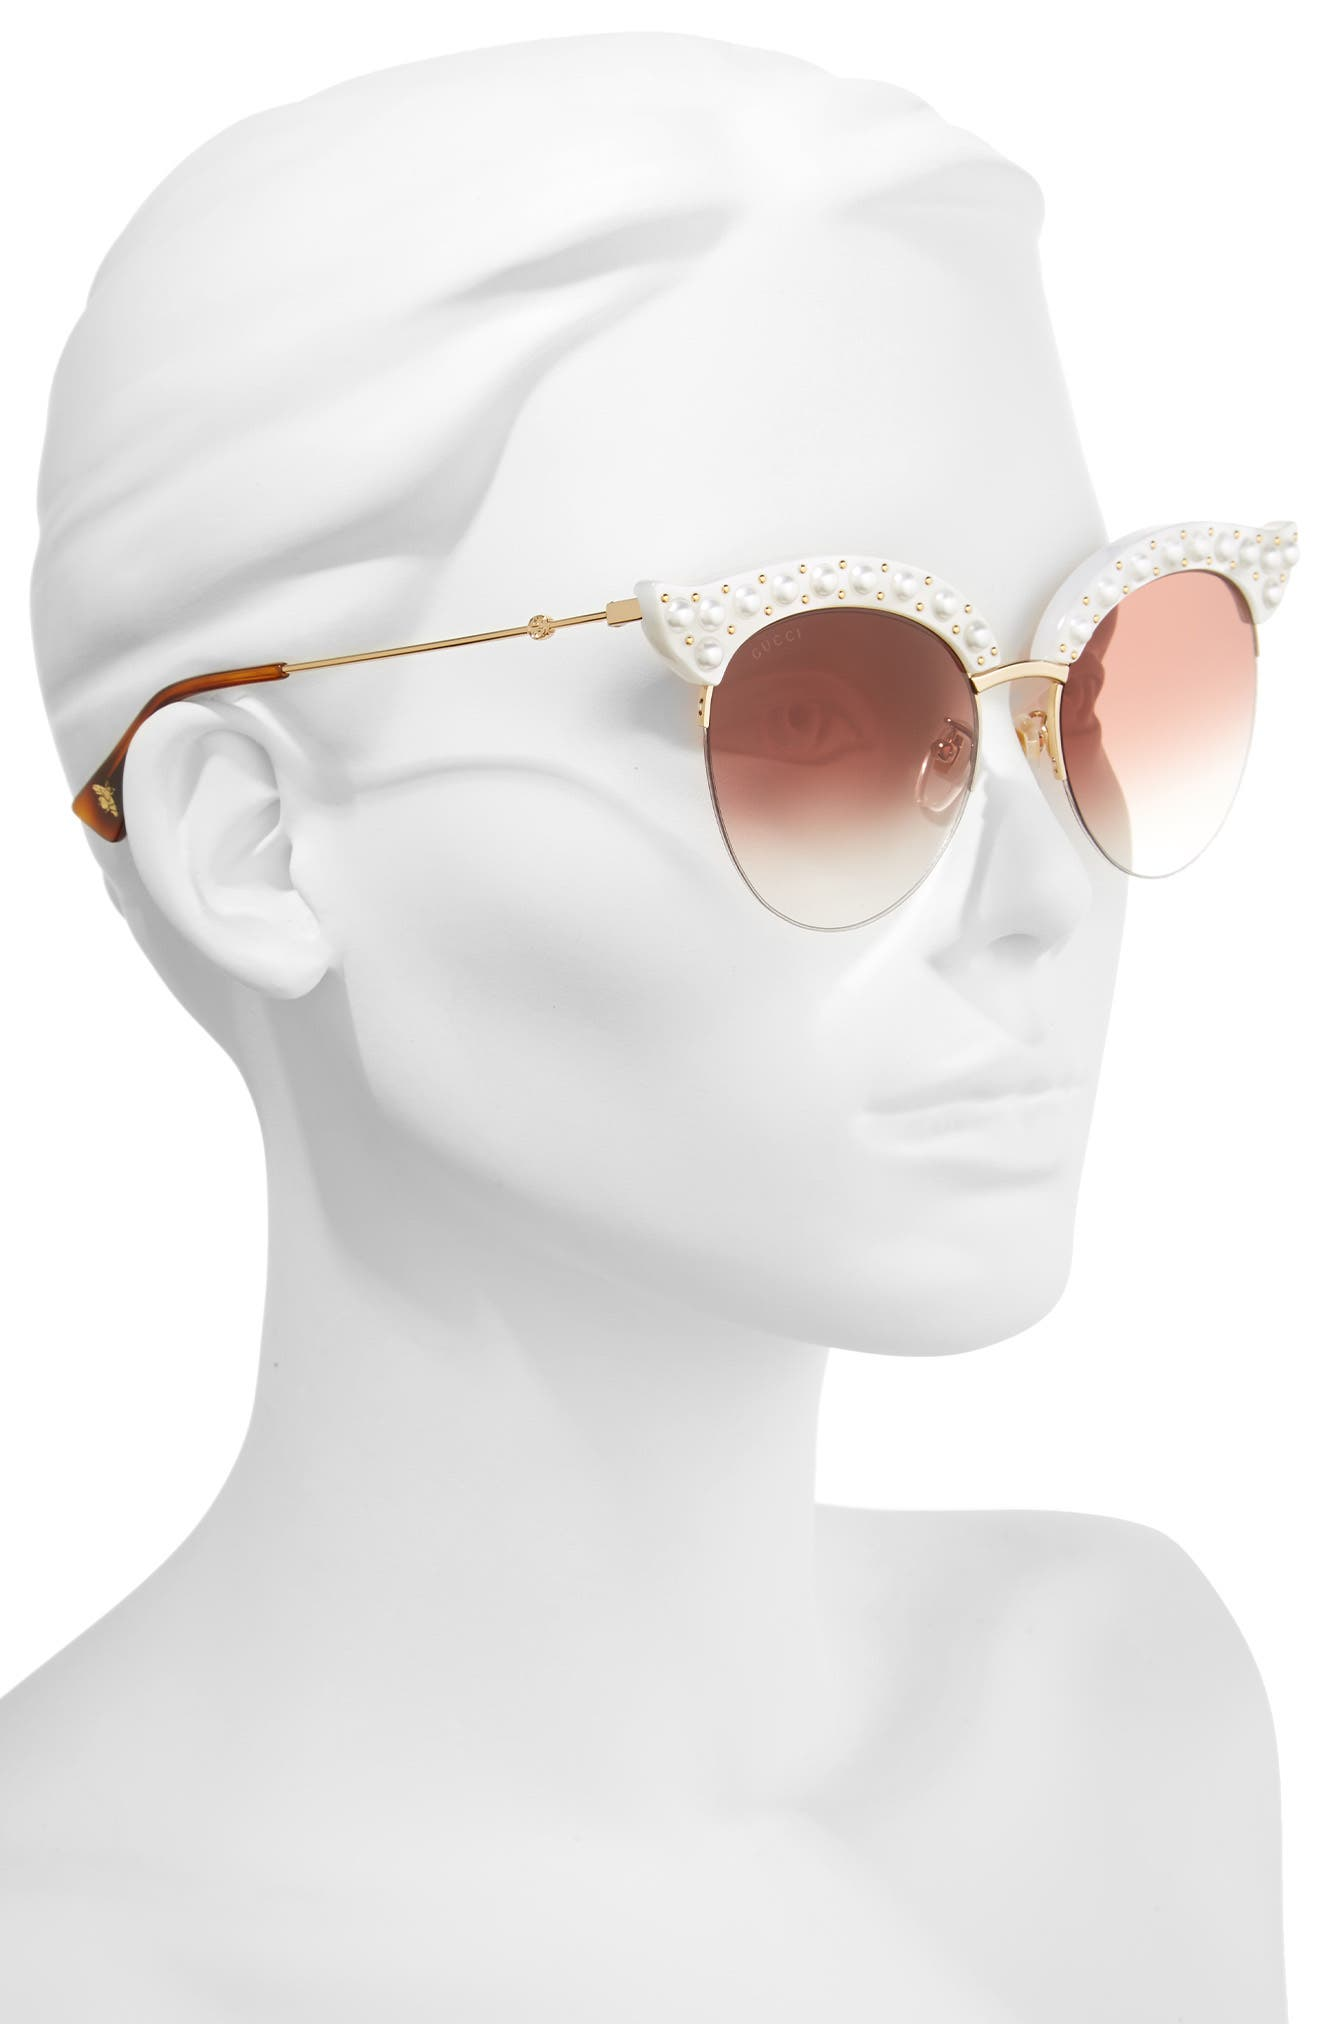 53mm Embellished Cat Eye Sunglasses,                             Alternate thumbnail 2, color,                             White